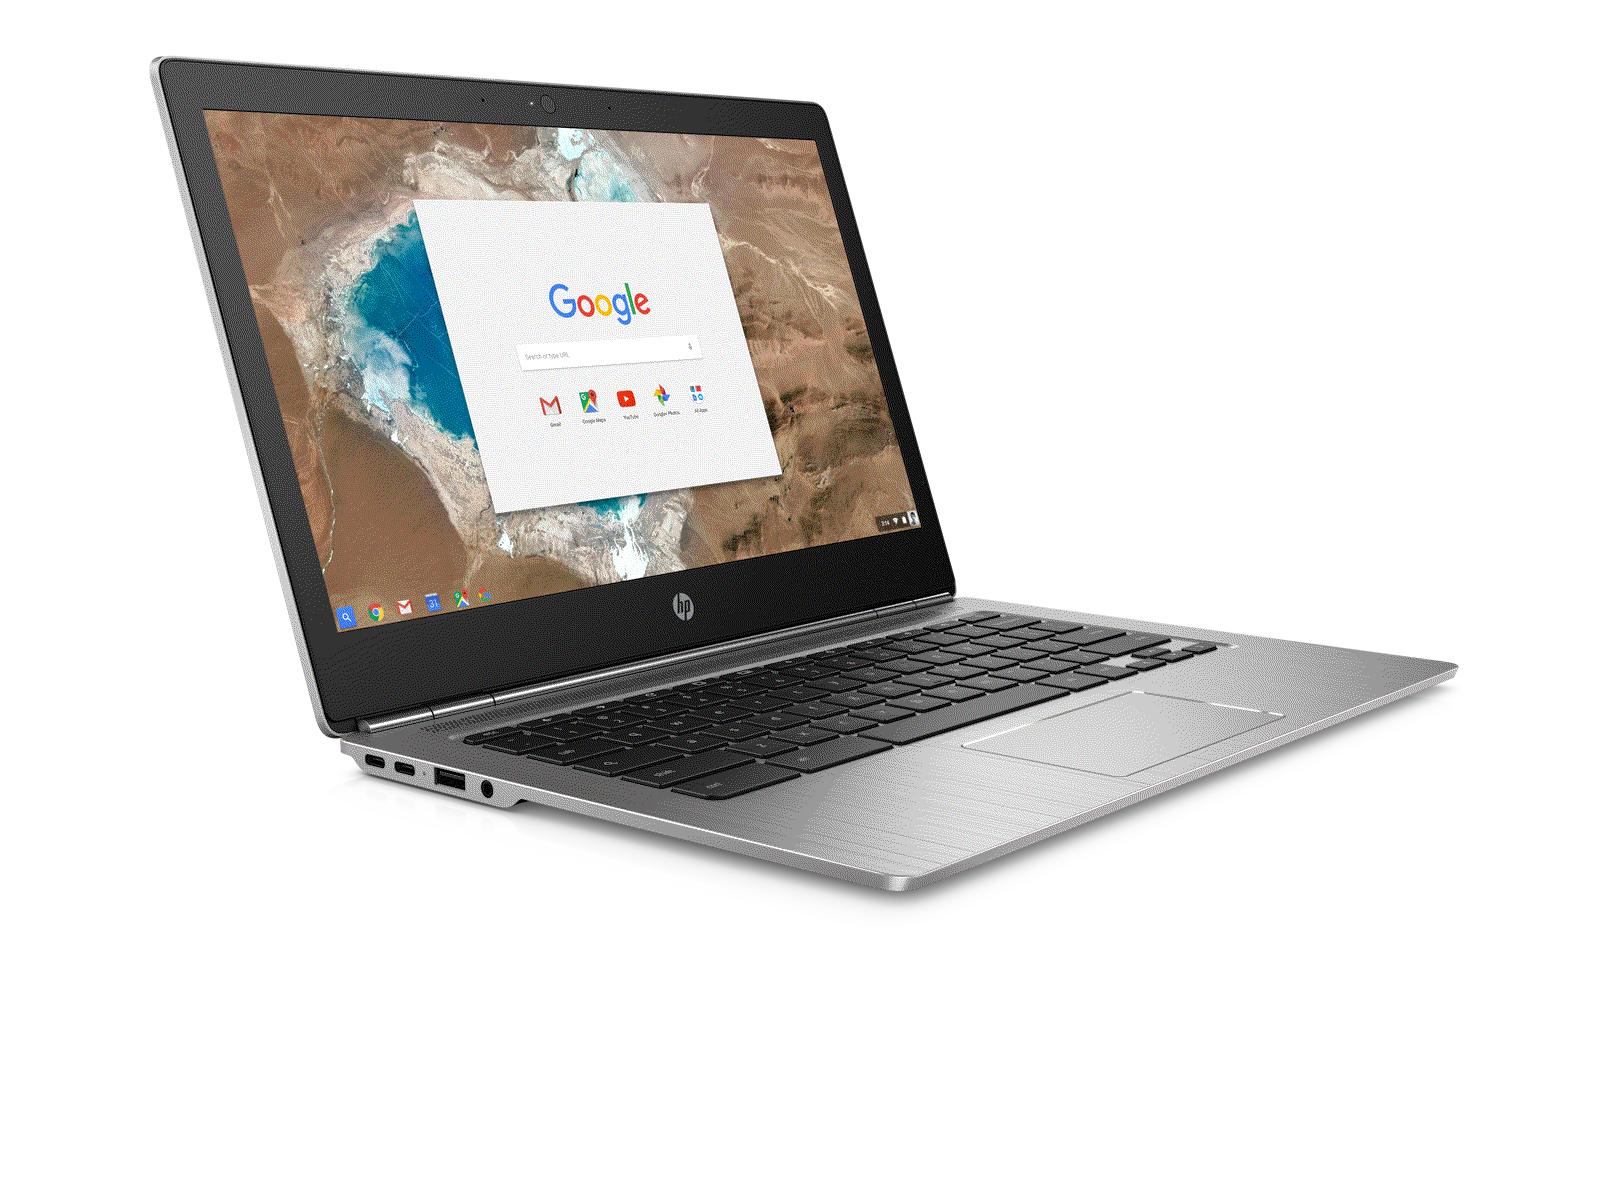 Google Chromebook technical training